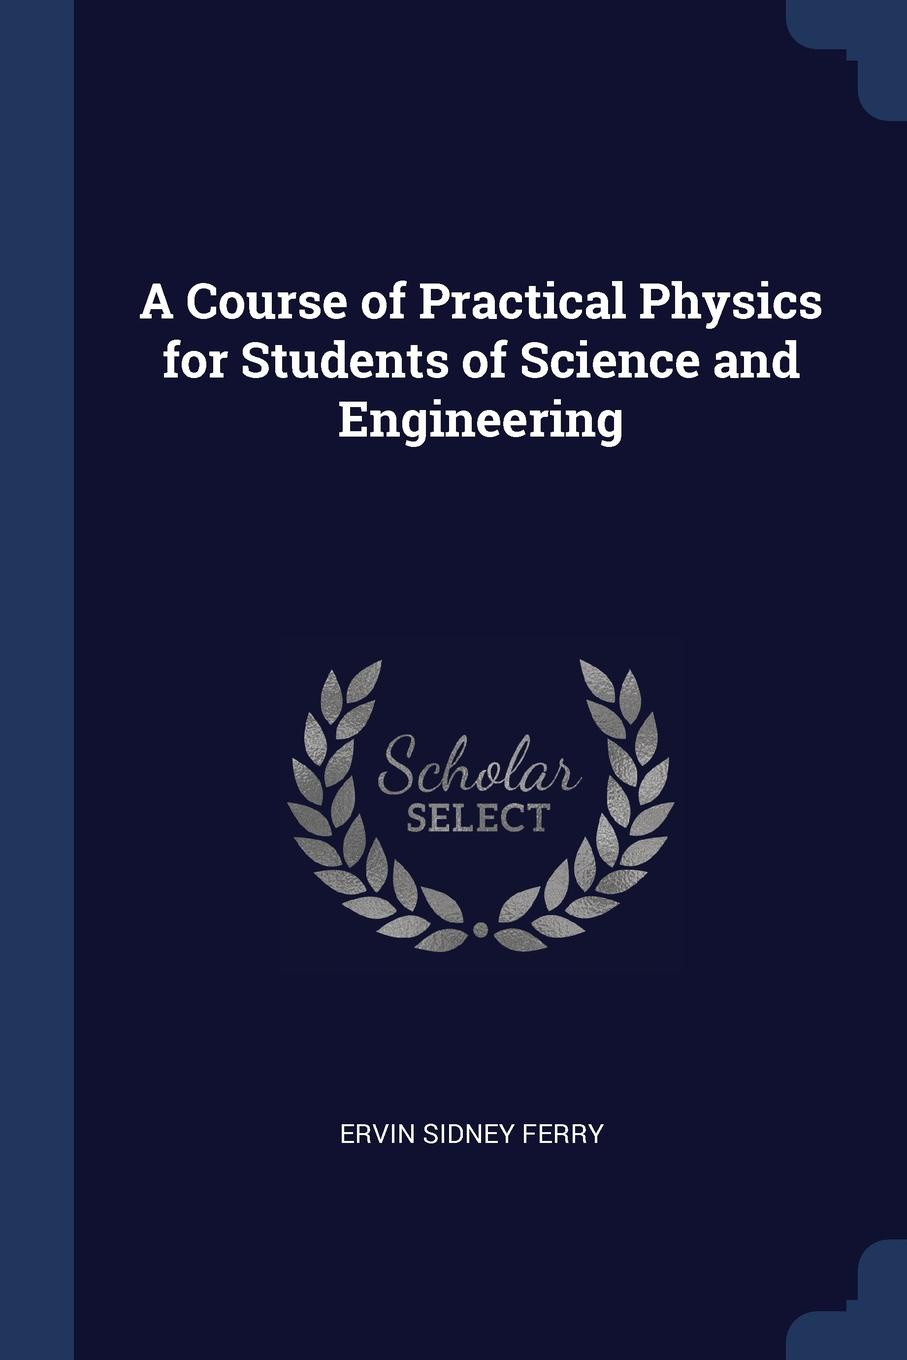 A Course of Practical Physics for Students of Science and Engineering. Ervin Sidney Ferry